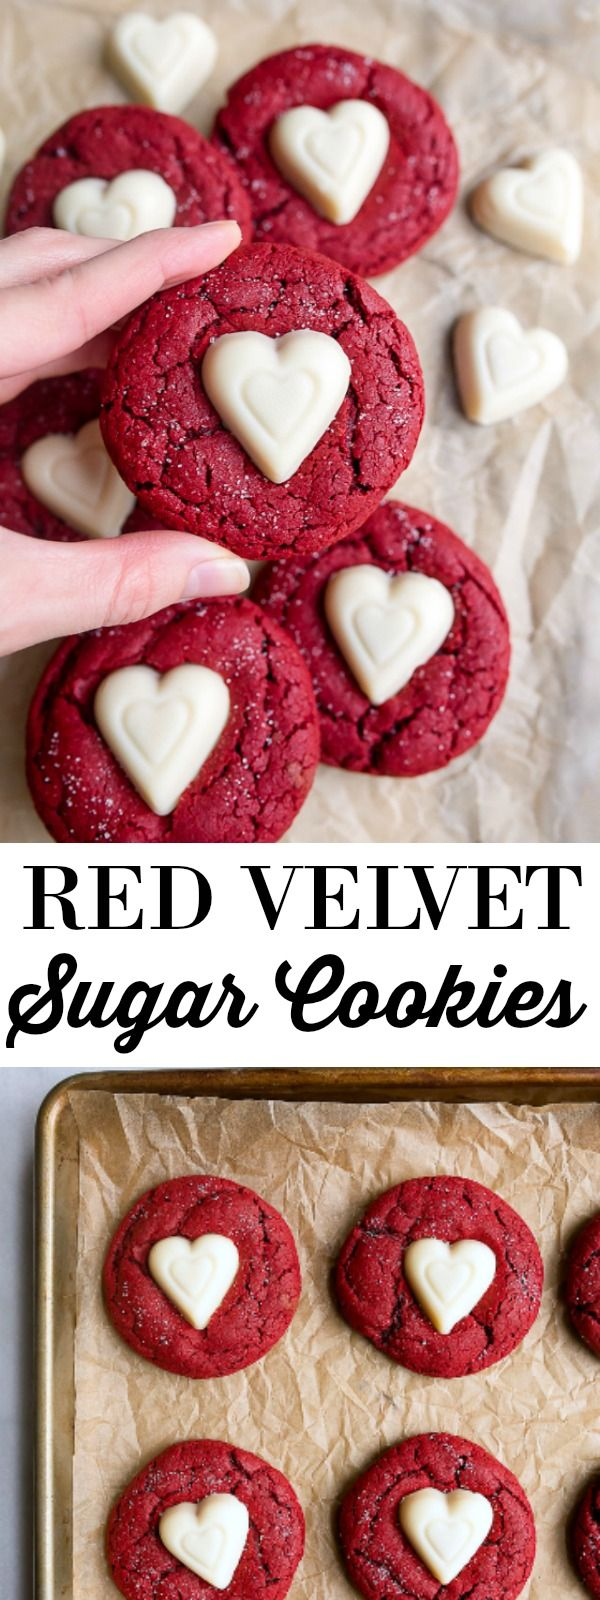 865 Best Cookies Recipes Images On Pinterest Cookies Nutella